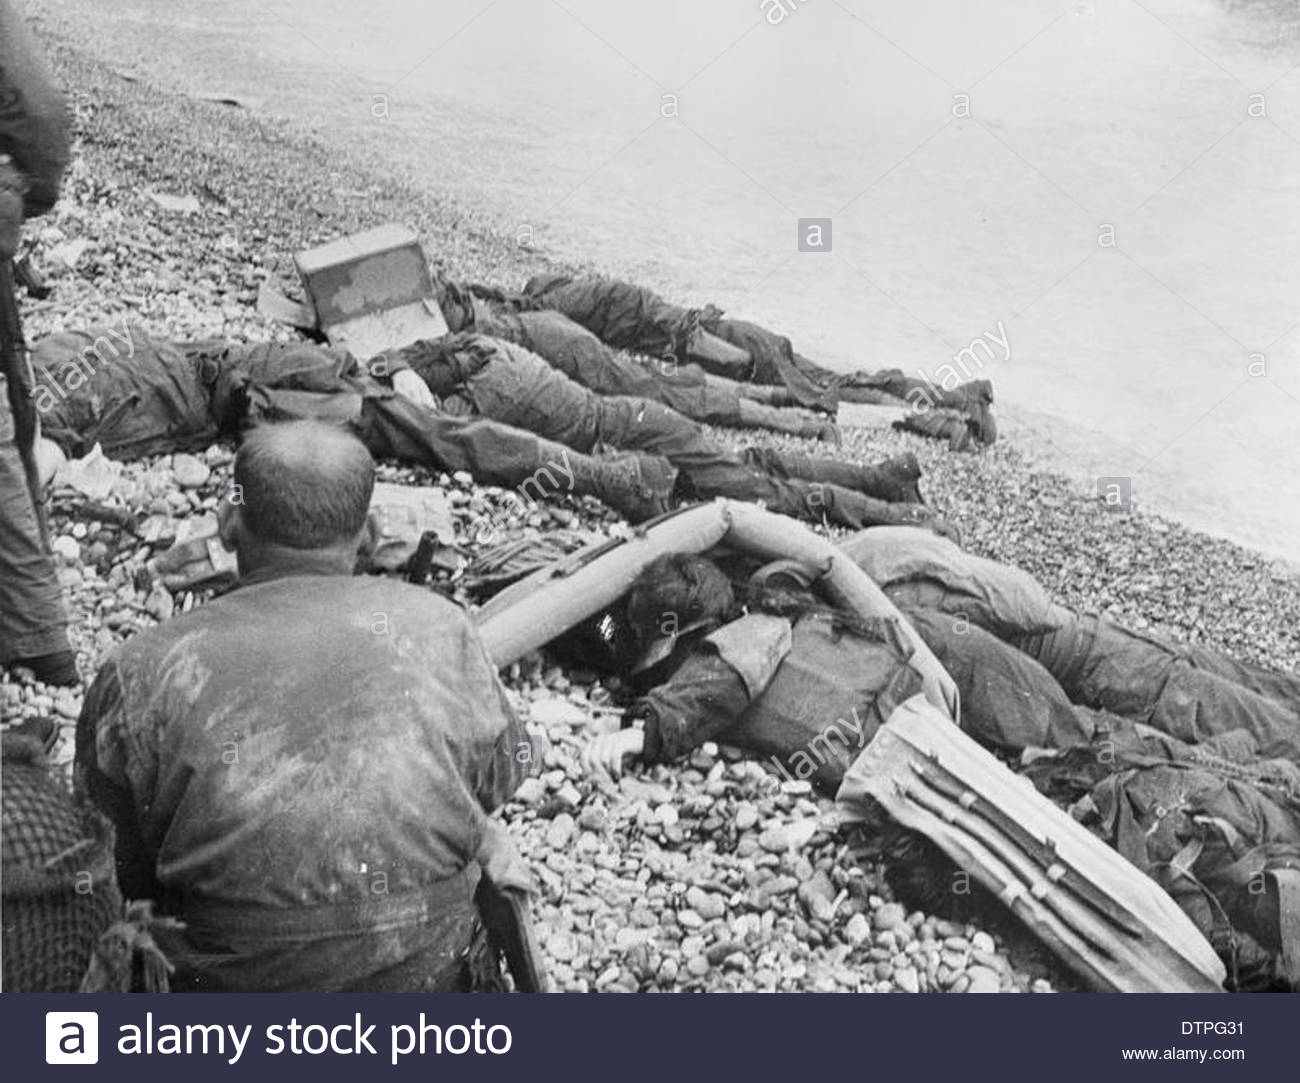 D-day - Allied Forces during the Invasion of Normandy 6 June 1944 EA25734 Stock Photo